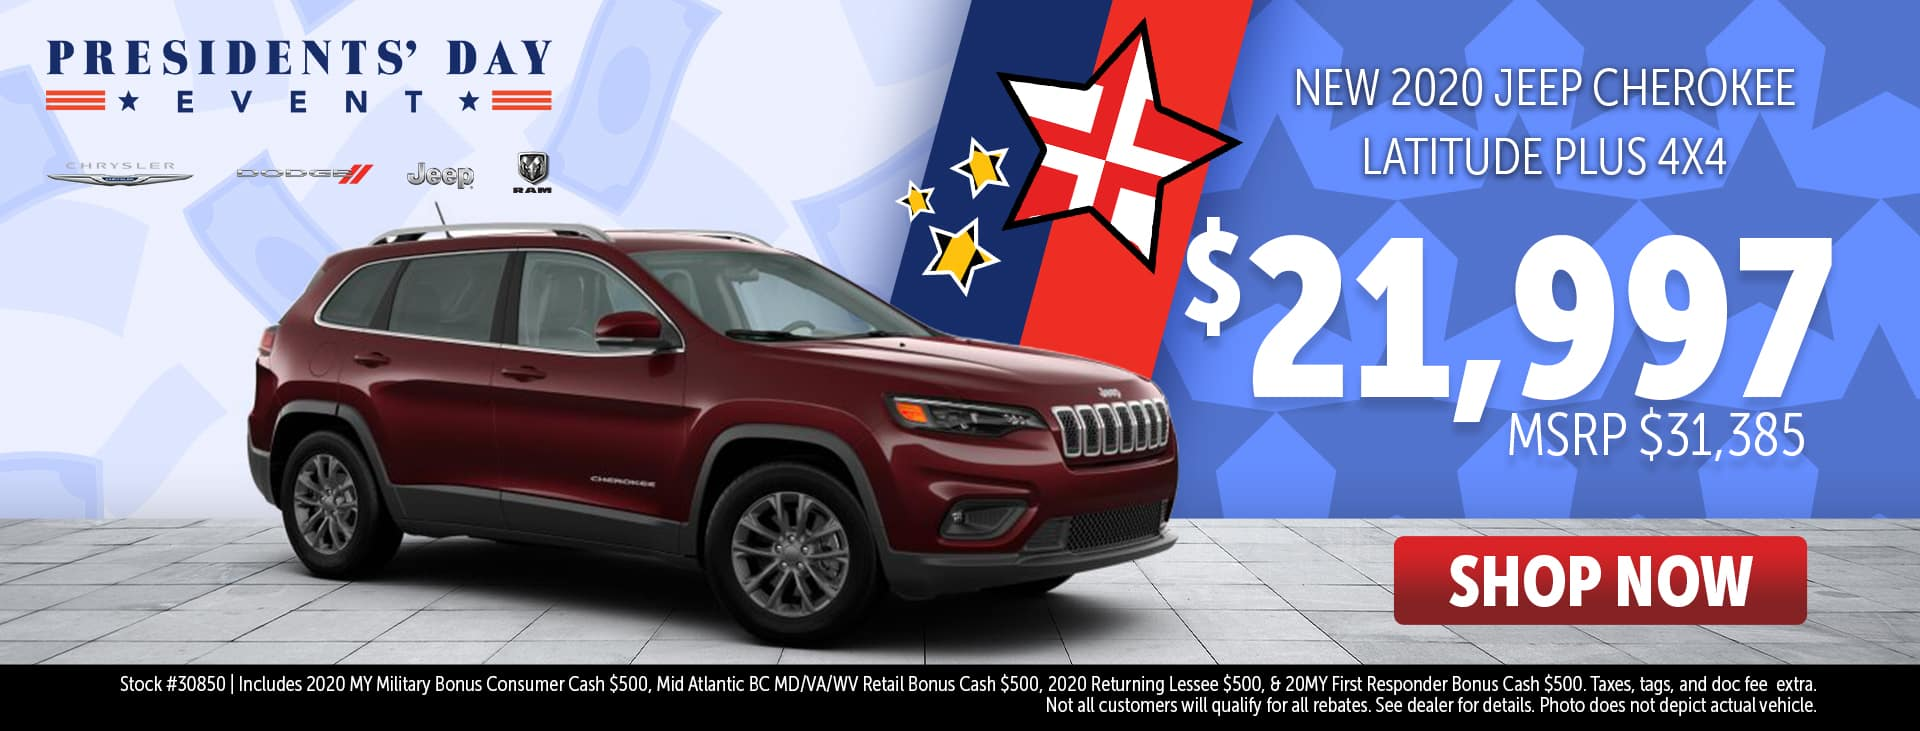 Presidents' Day Event Price for 2020 Jeep Cherokee